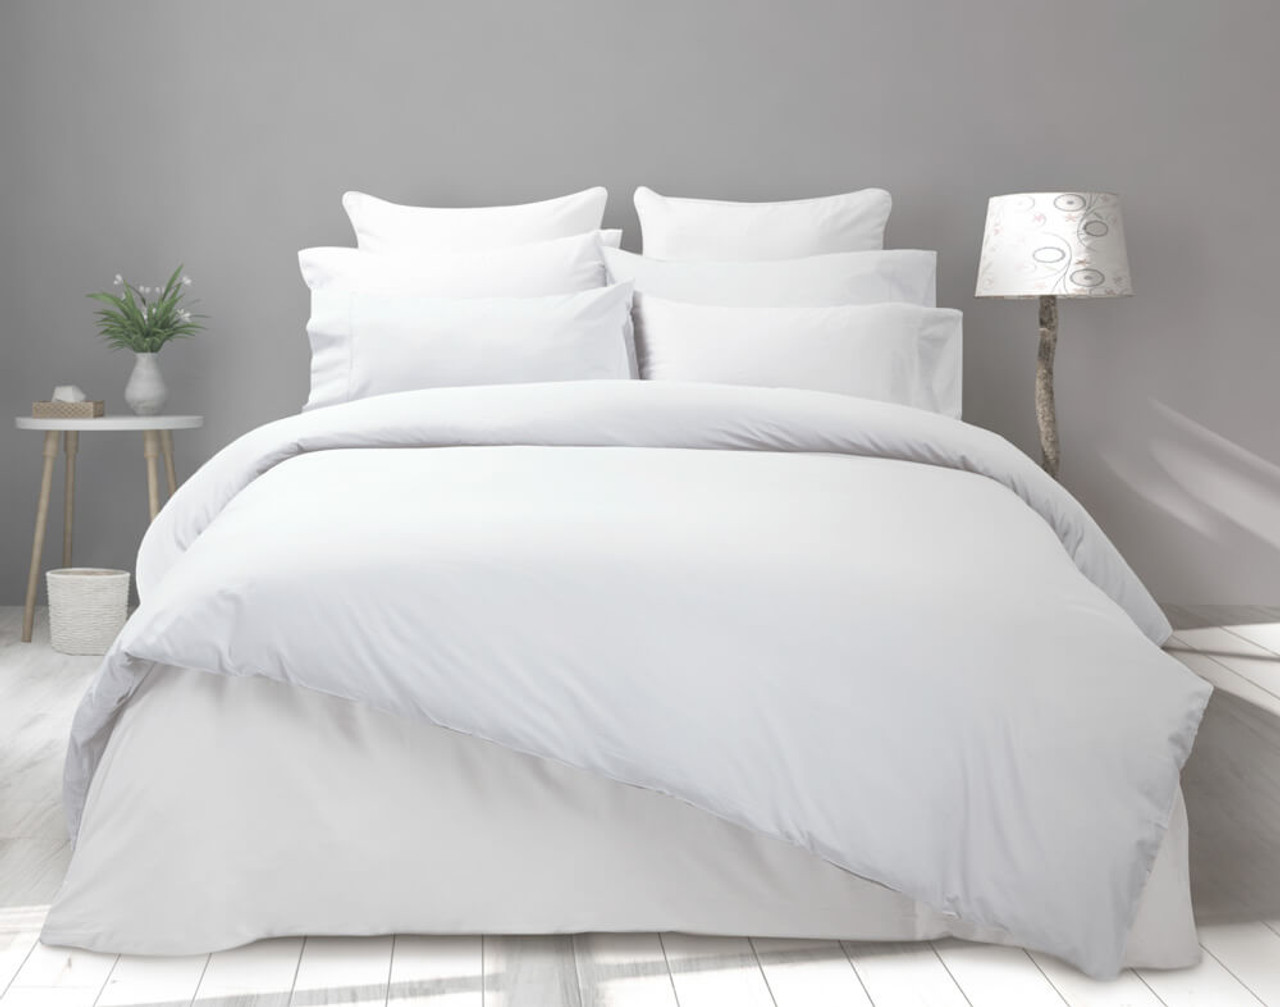 Front view of Cotton Blend Percale Duvet Cover with matching sheet set.